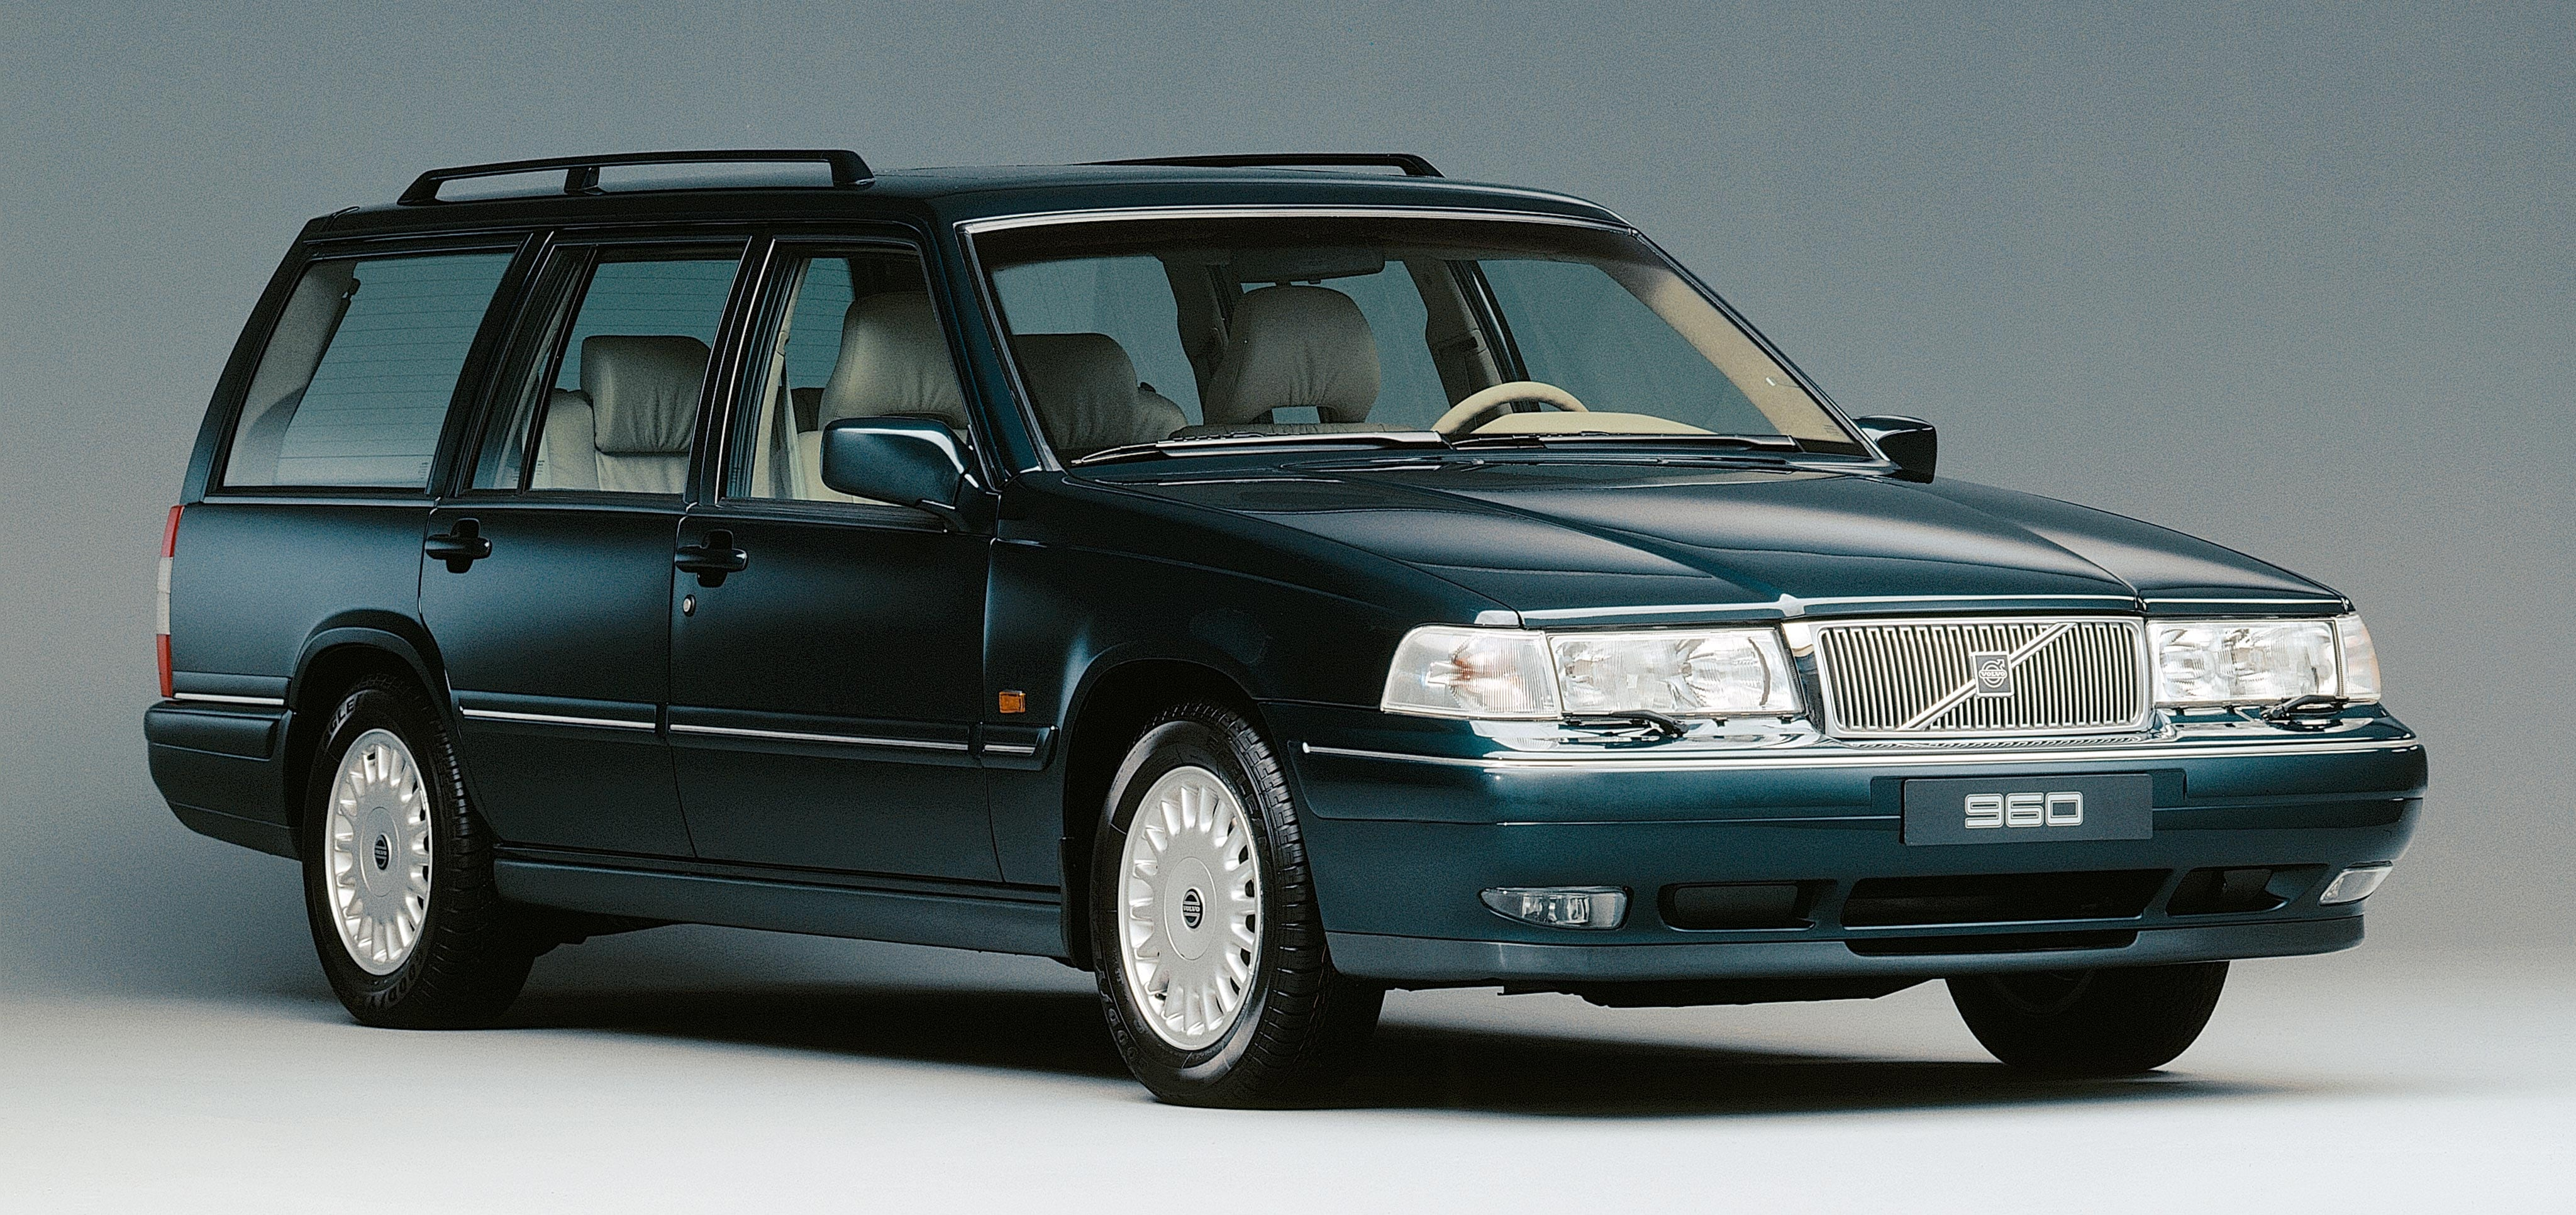 960 WAGON | Volvo Car USA